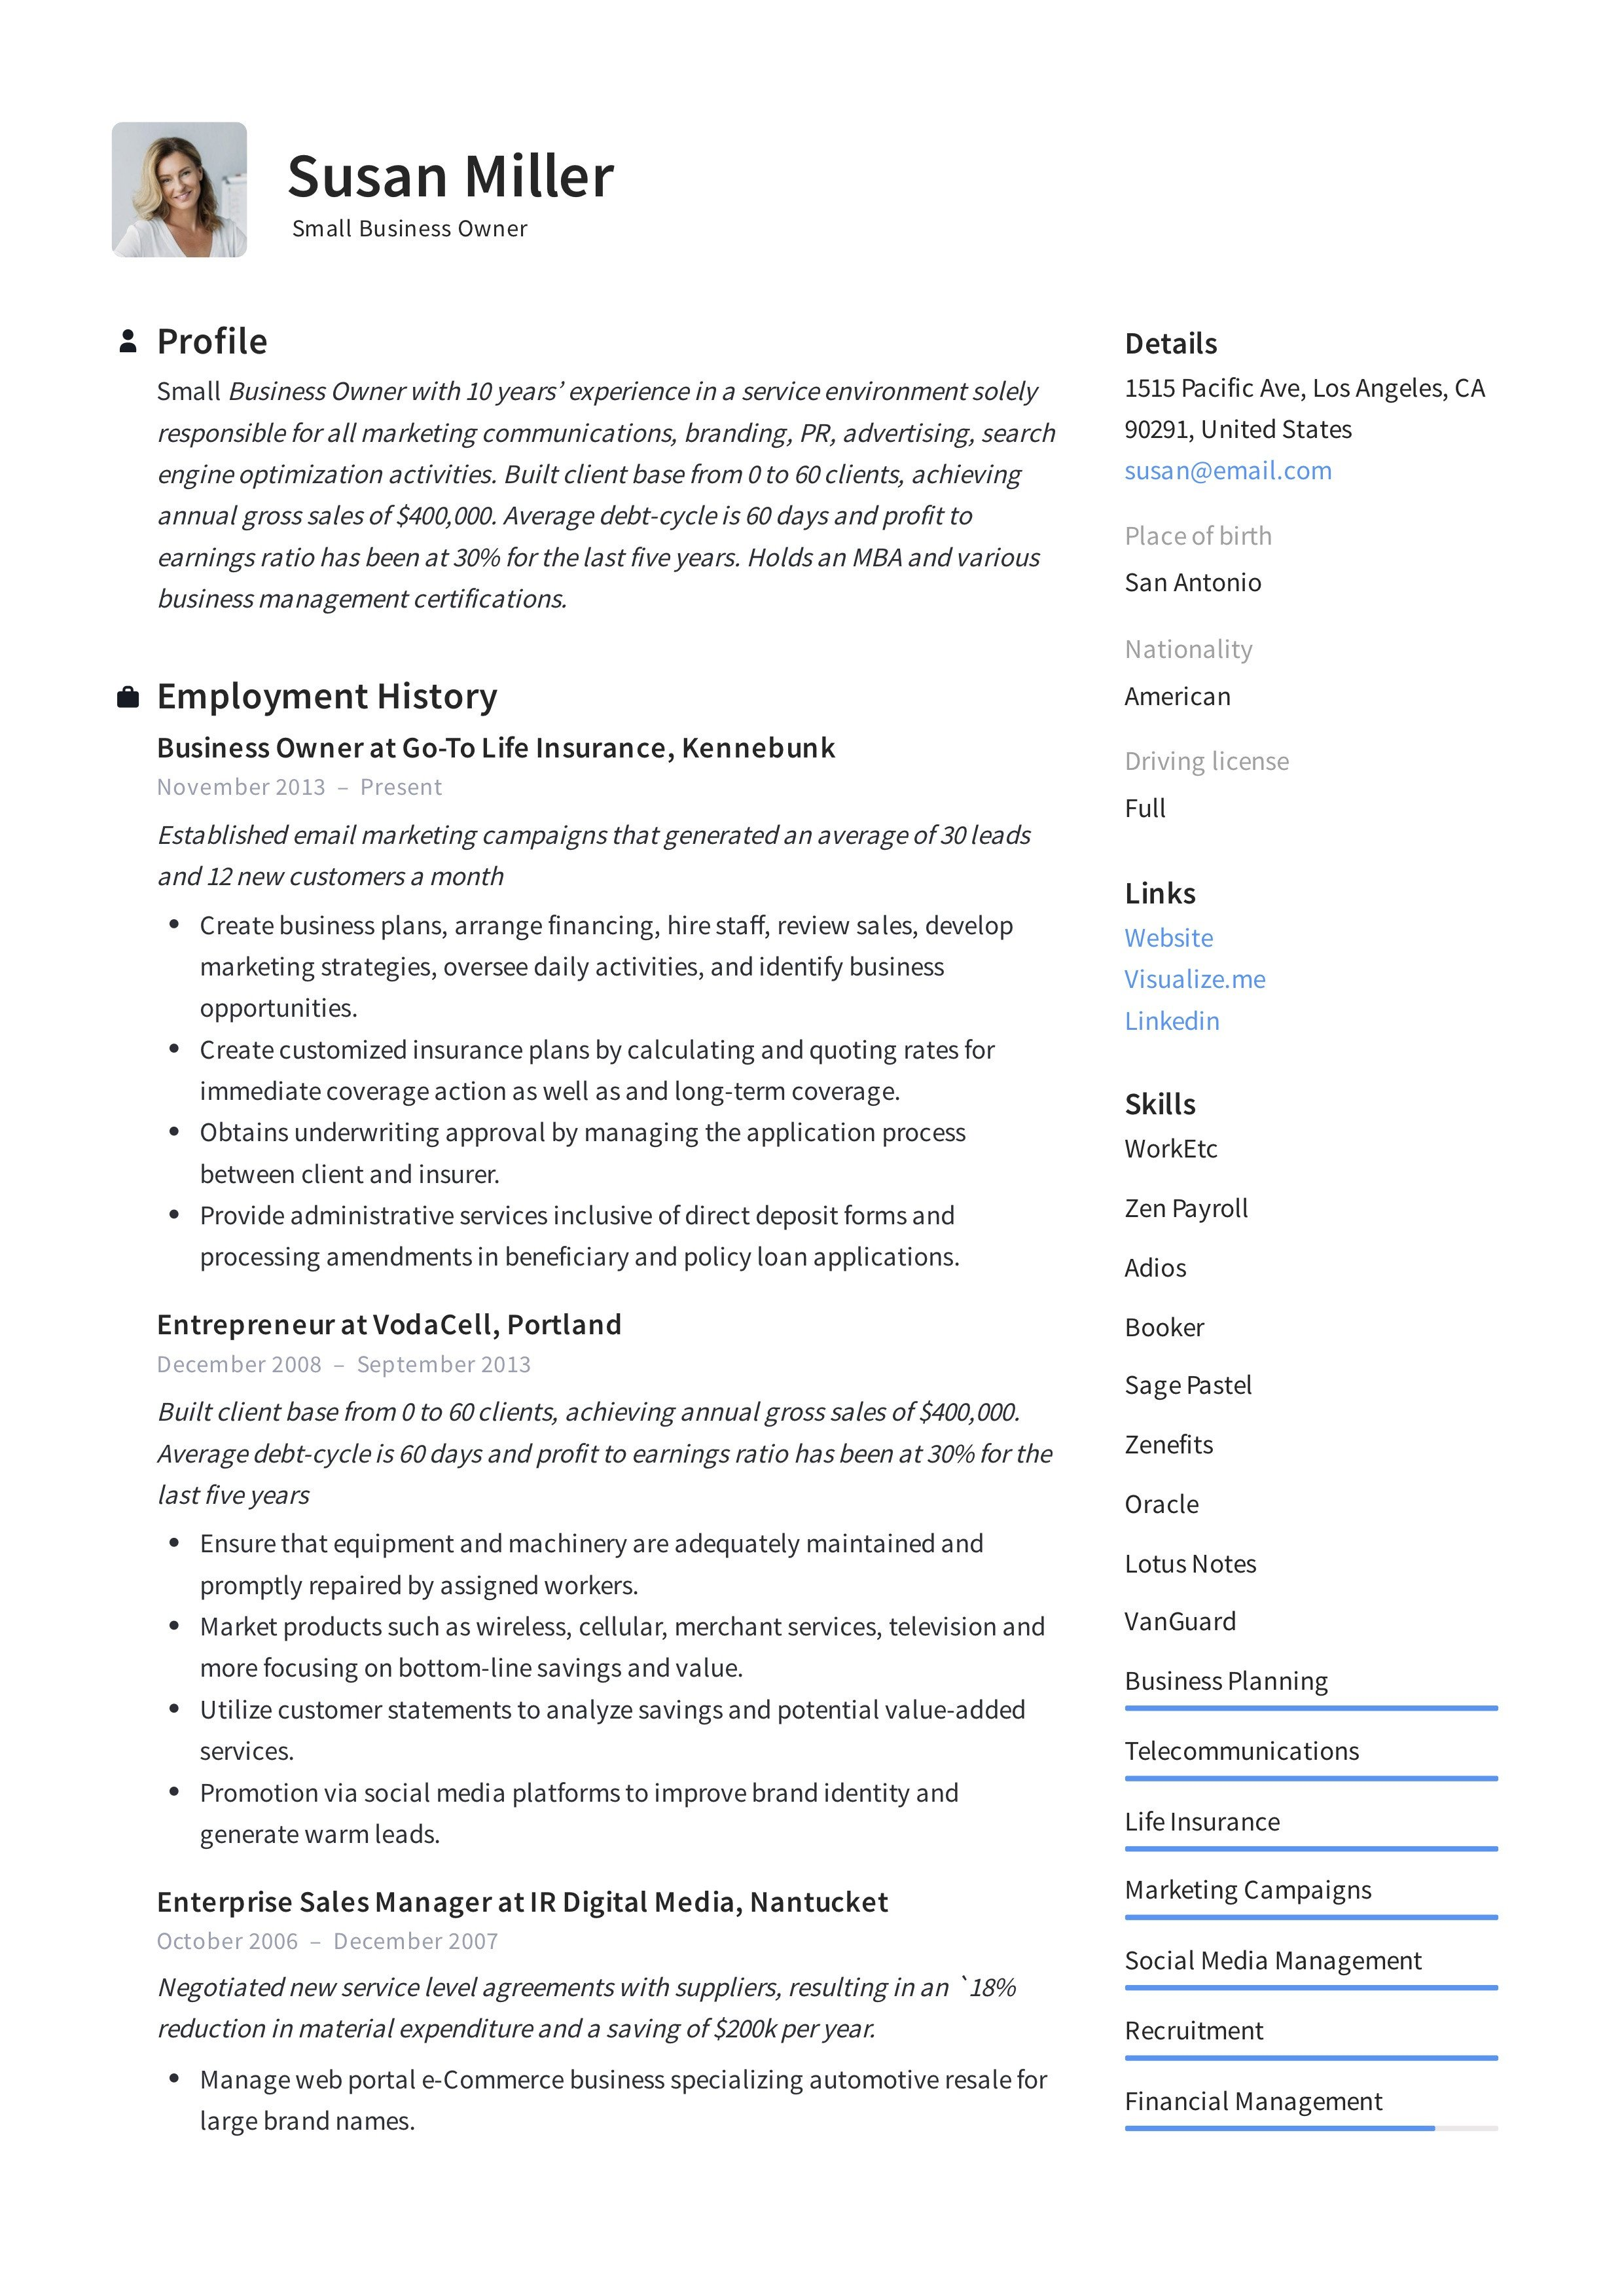 Small Business Owner Resume Small Business Owner Resume Guide 12 Examples Pdf